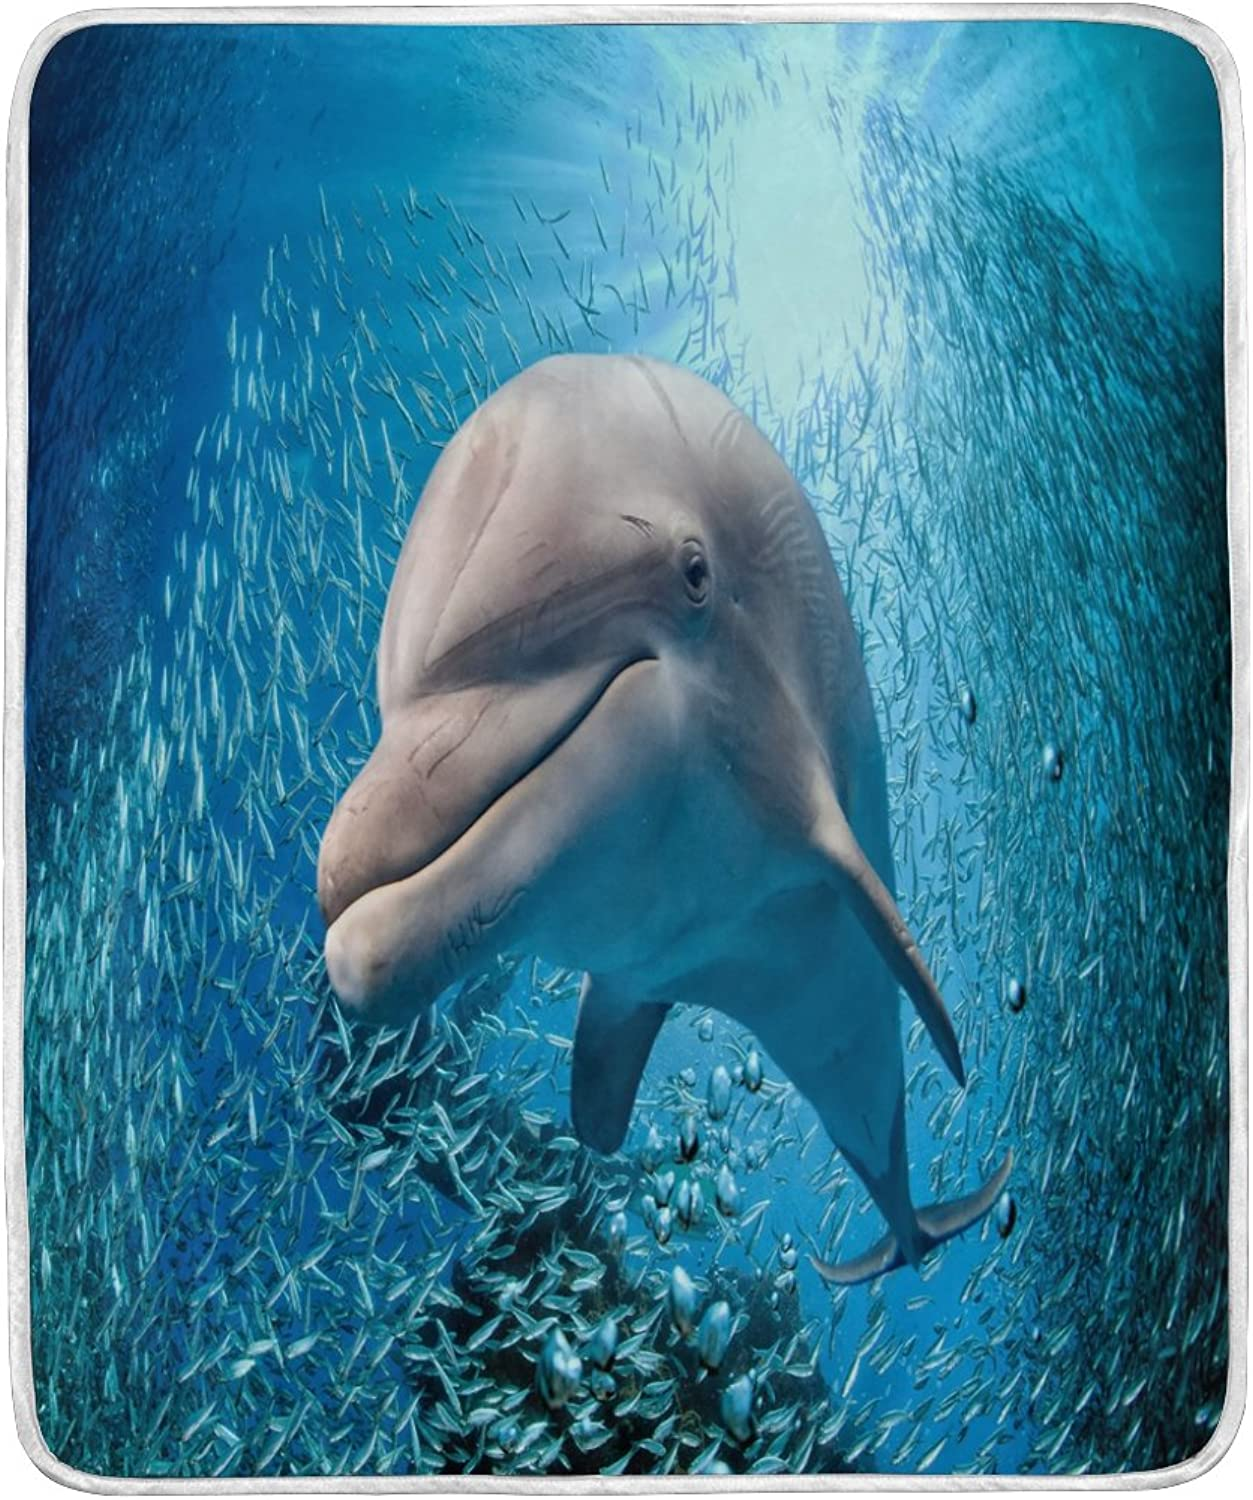 ALAZA Home Decor Fantasy Dolphin Ocean Sea Blanket Soft Warm Blankets for Bed Couch Sofa Lightweight Travelling Camping 60 x 50 inch Throw Size for Kids Boys Women